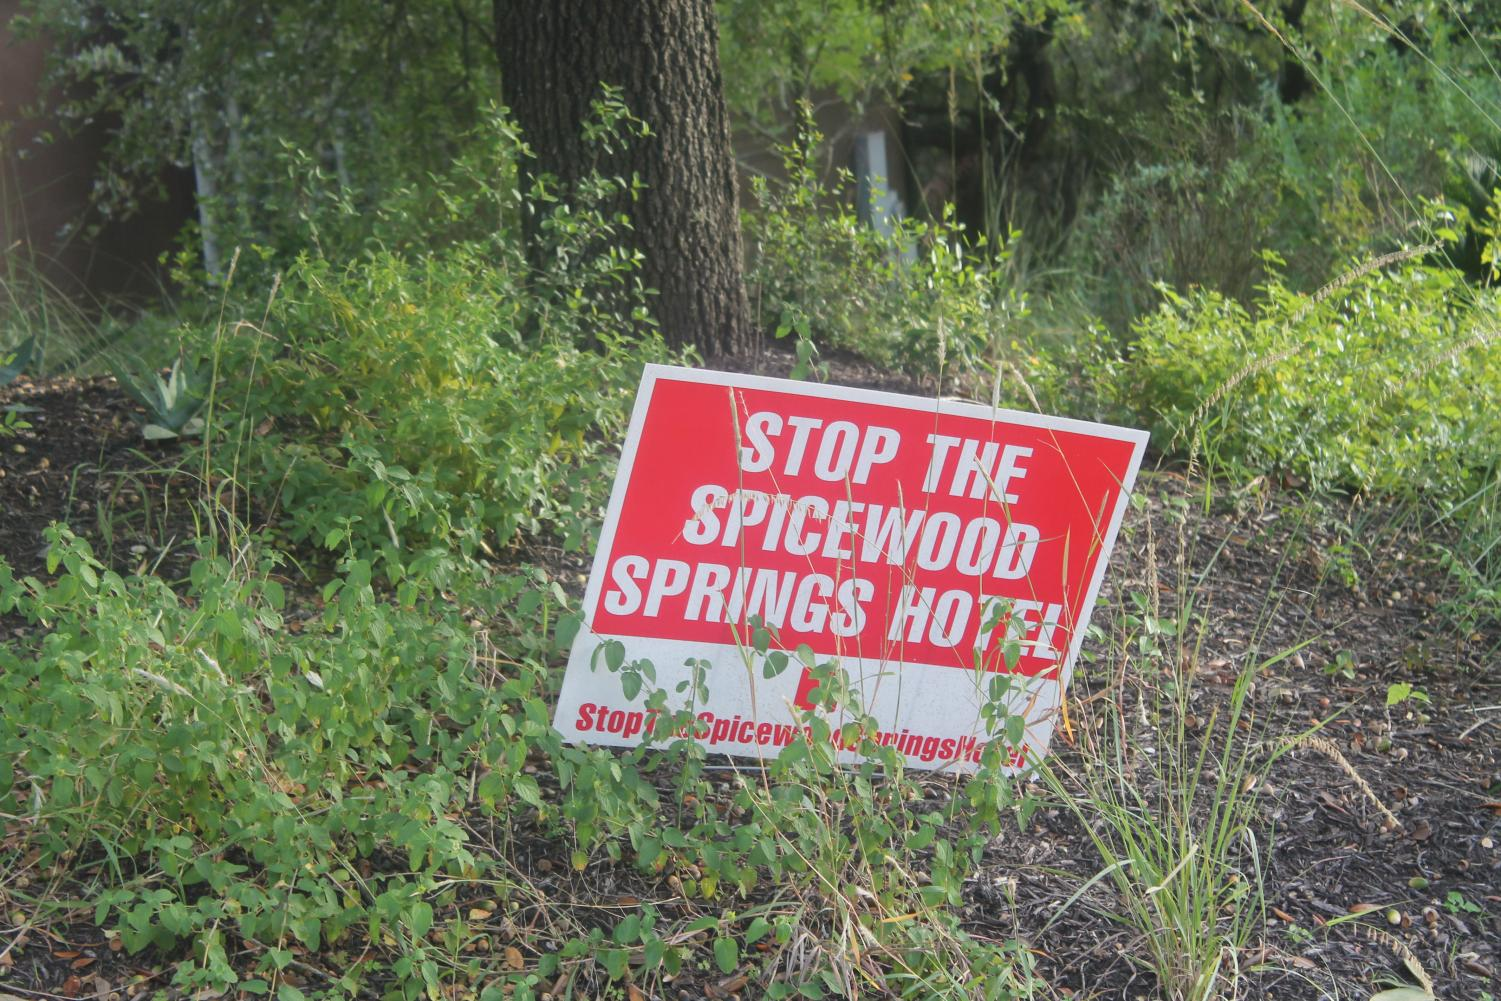 Many people have these red signs in protest of the Spicewood Springs Hotel. You may have seen them last year put up near the school.